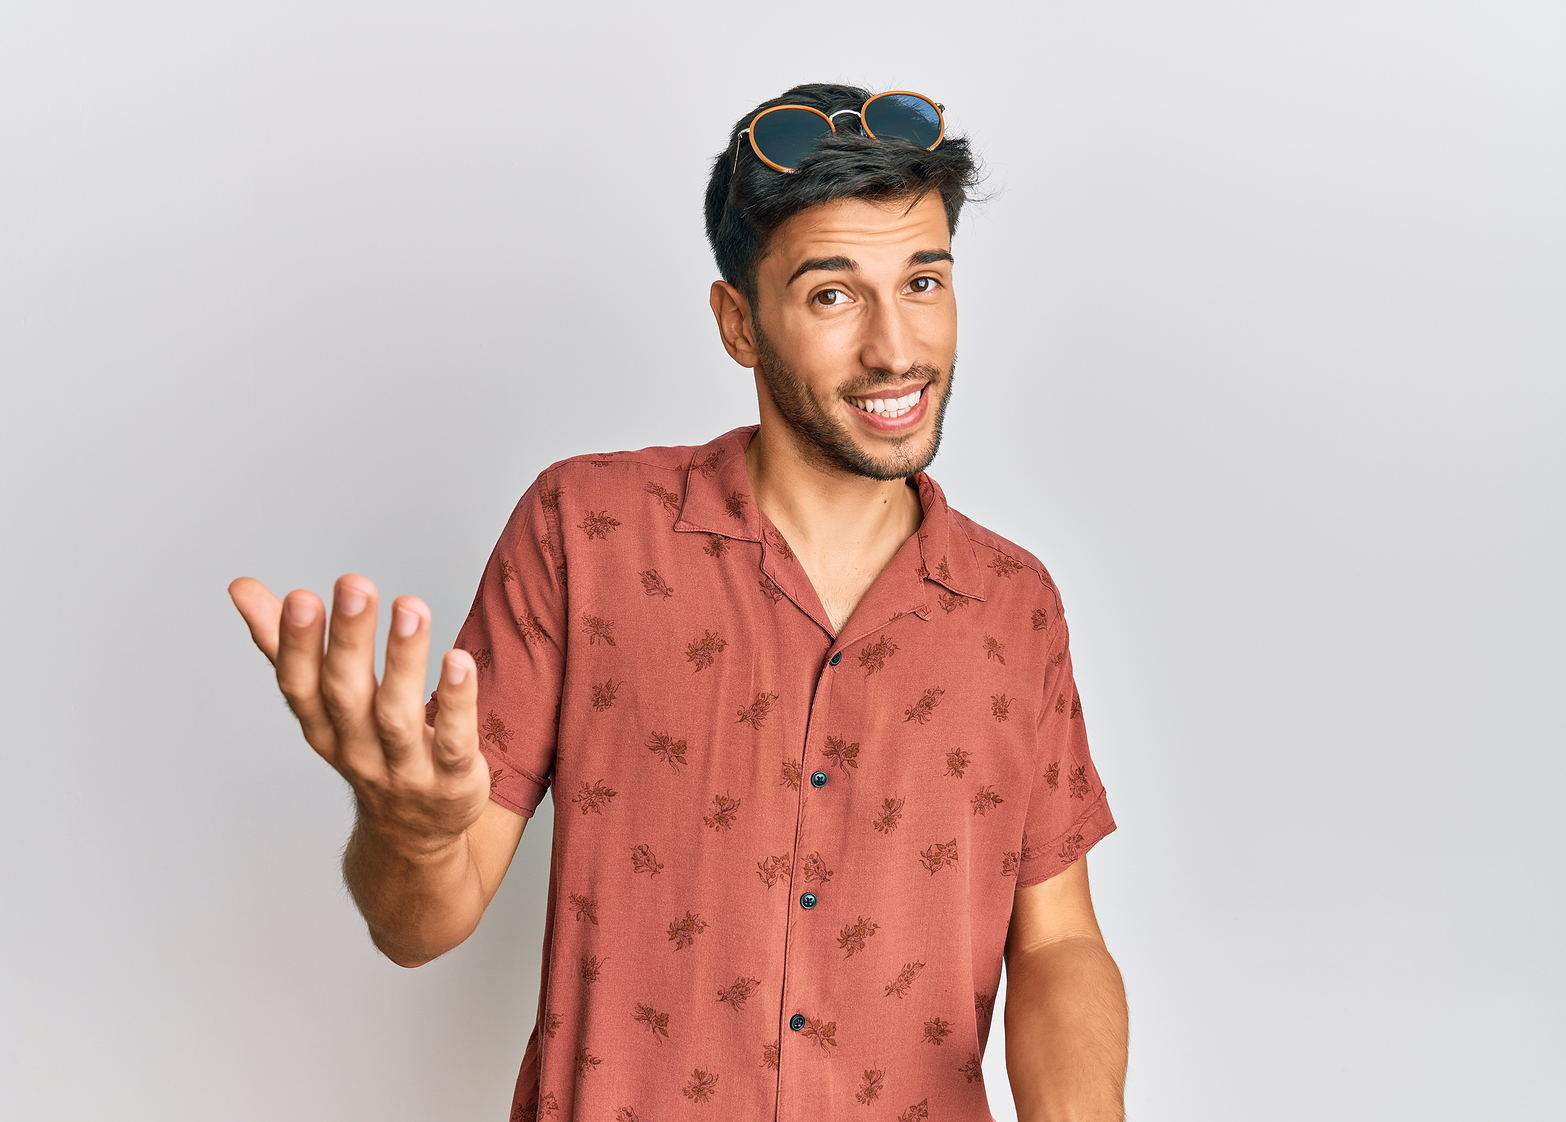 Photo of man wearing a red short sleeve and glasses on his head smiling reaching his hand out to you with white background.